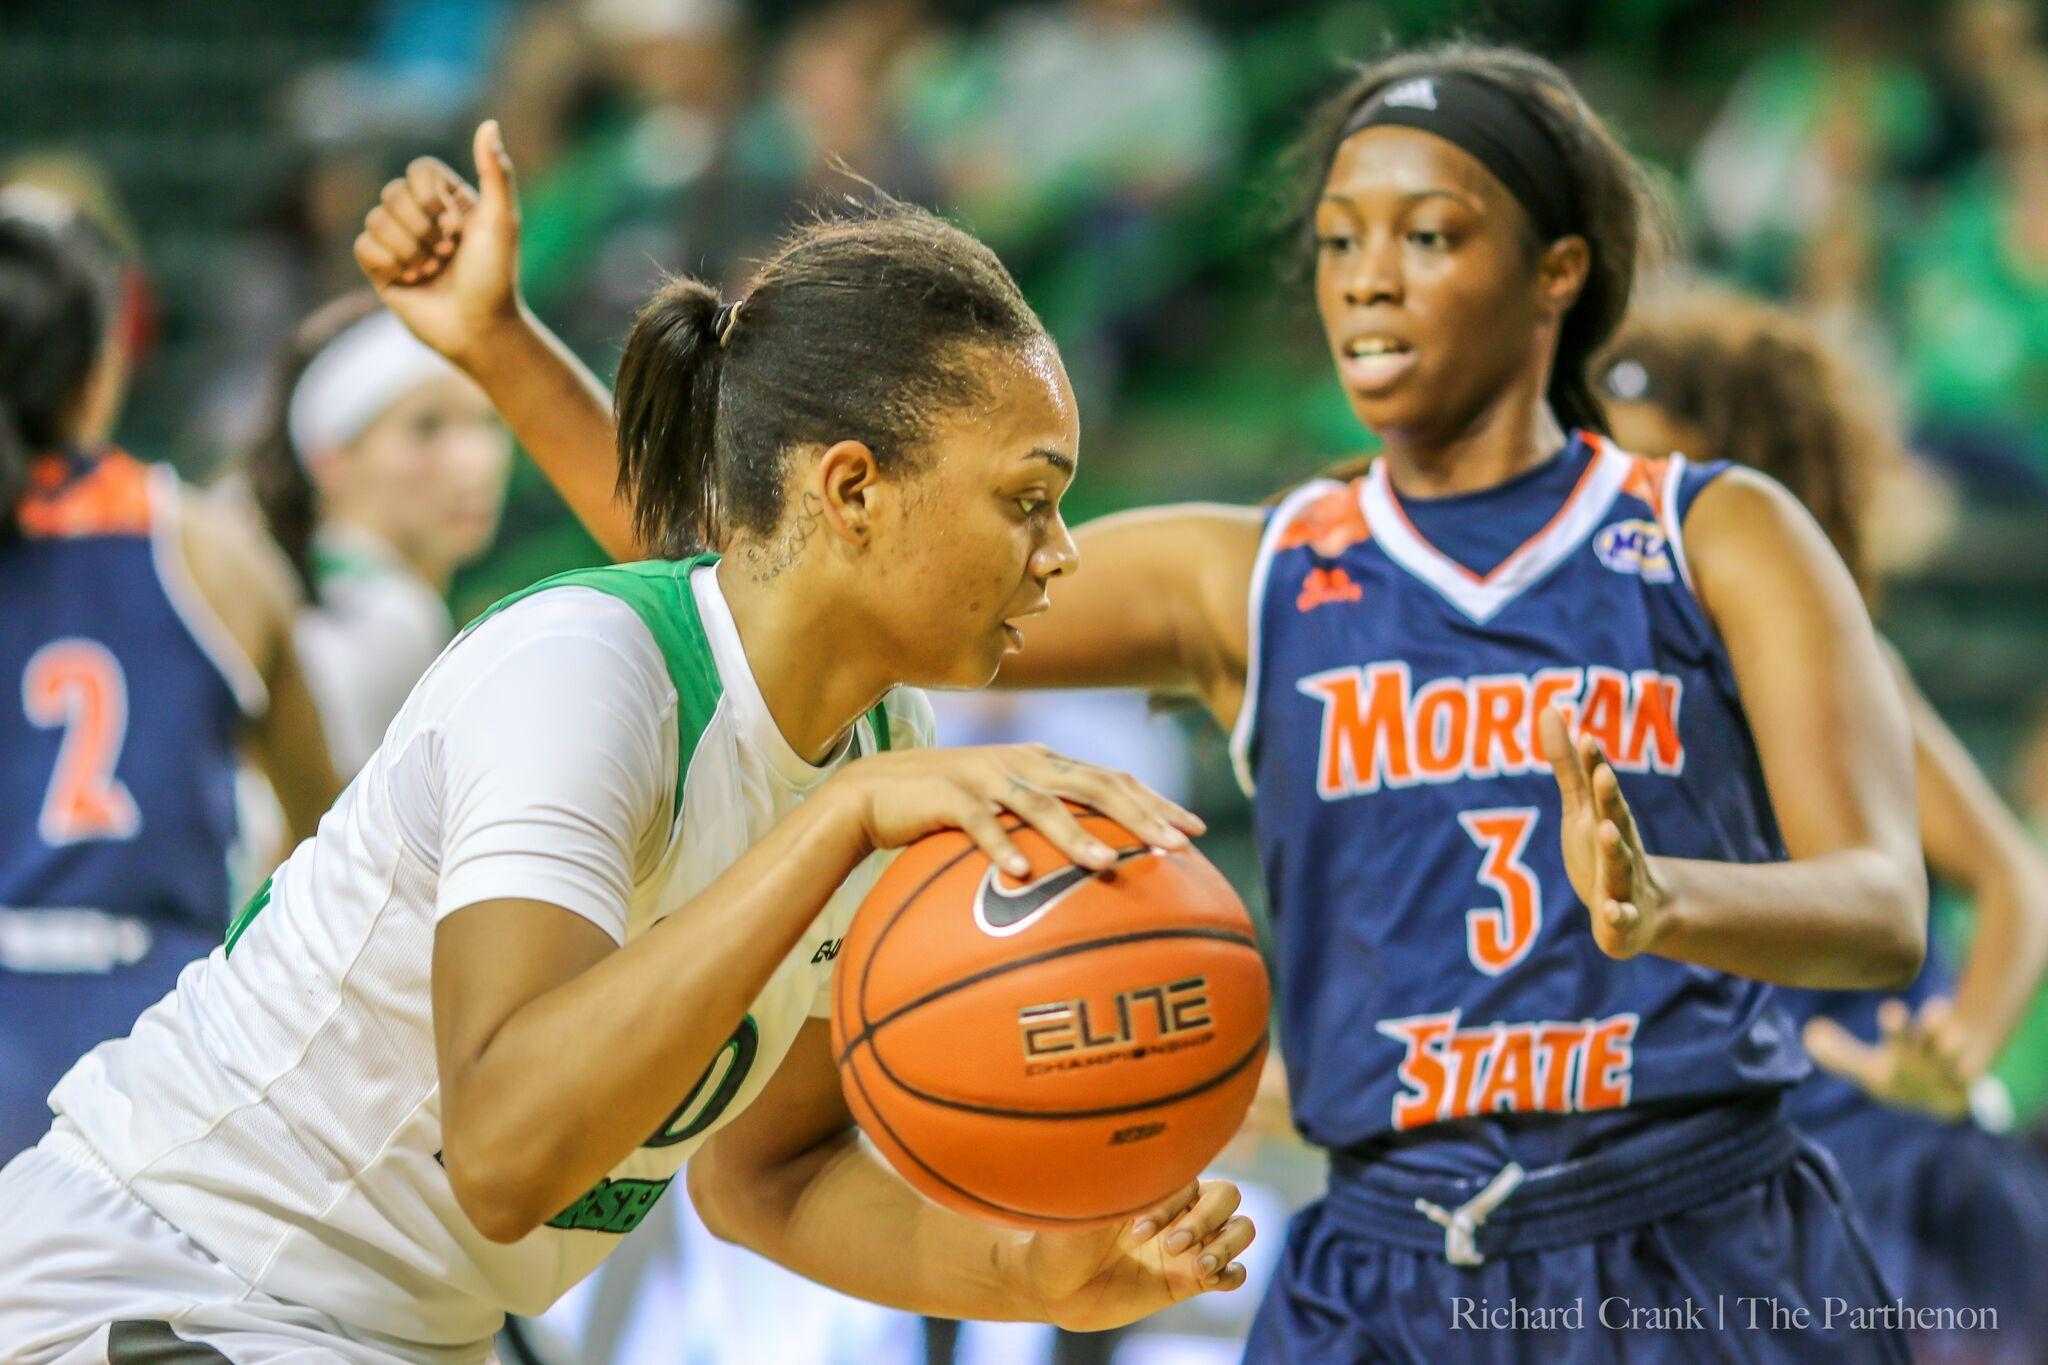 Marshall forward Talequia Hamilton (0) drives to the basket in a 62-43 win over Morgan State.